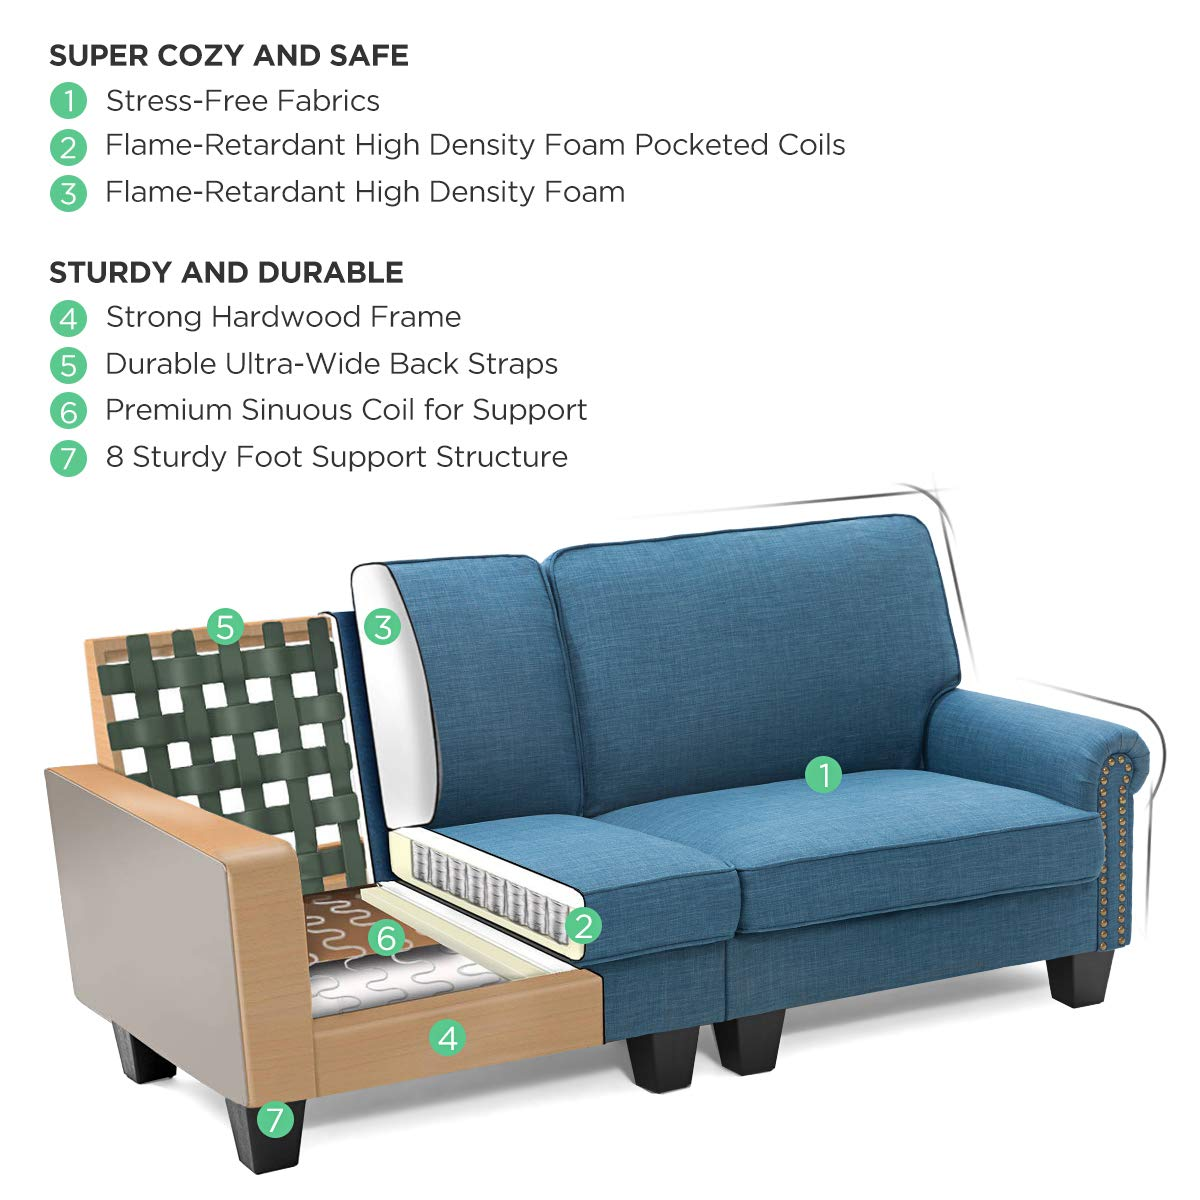 Awe Inspiring 70 Inch Sofa For Living Room Sofa Loveseat Soft And Easily Assemble Couch Blue Upholstered By Lifefair Spiritservingveterans Wood Chair Design Ideas Spiritservingveteransorg